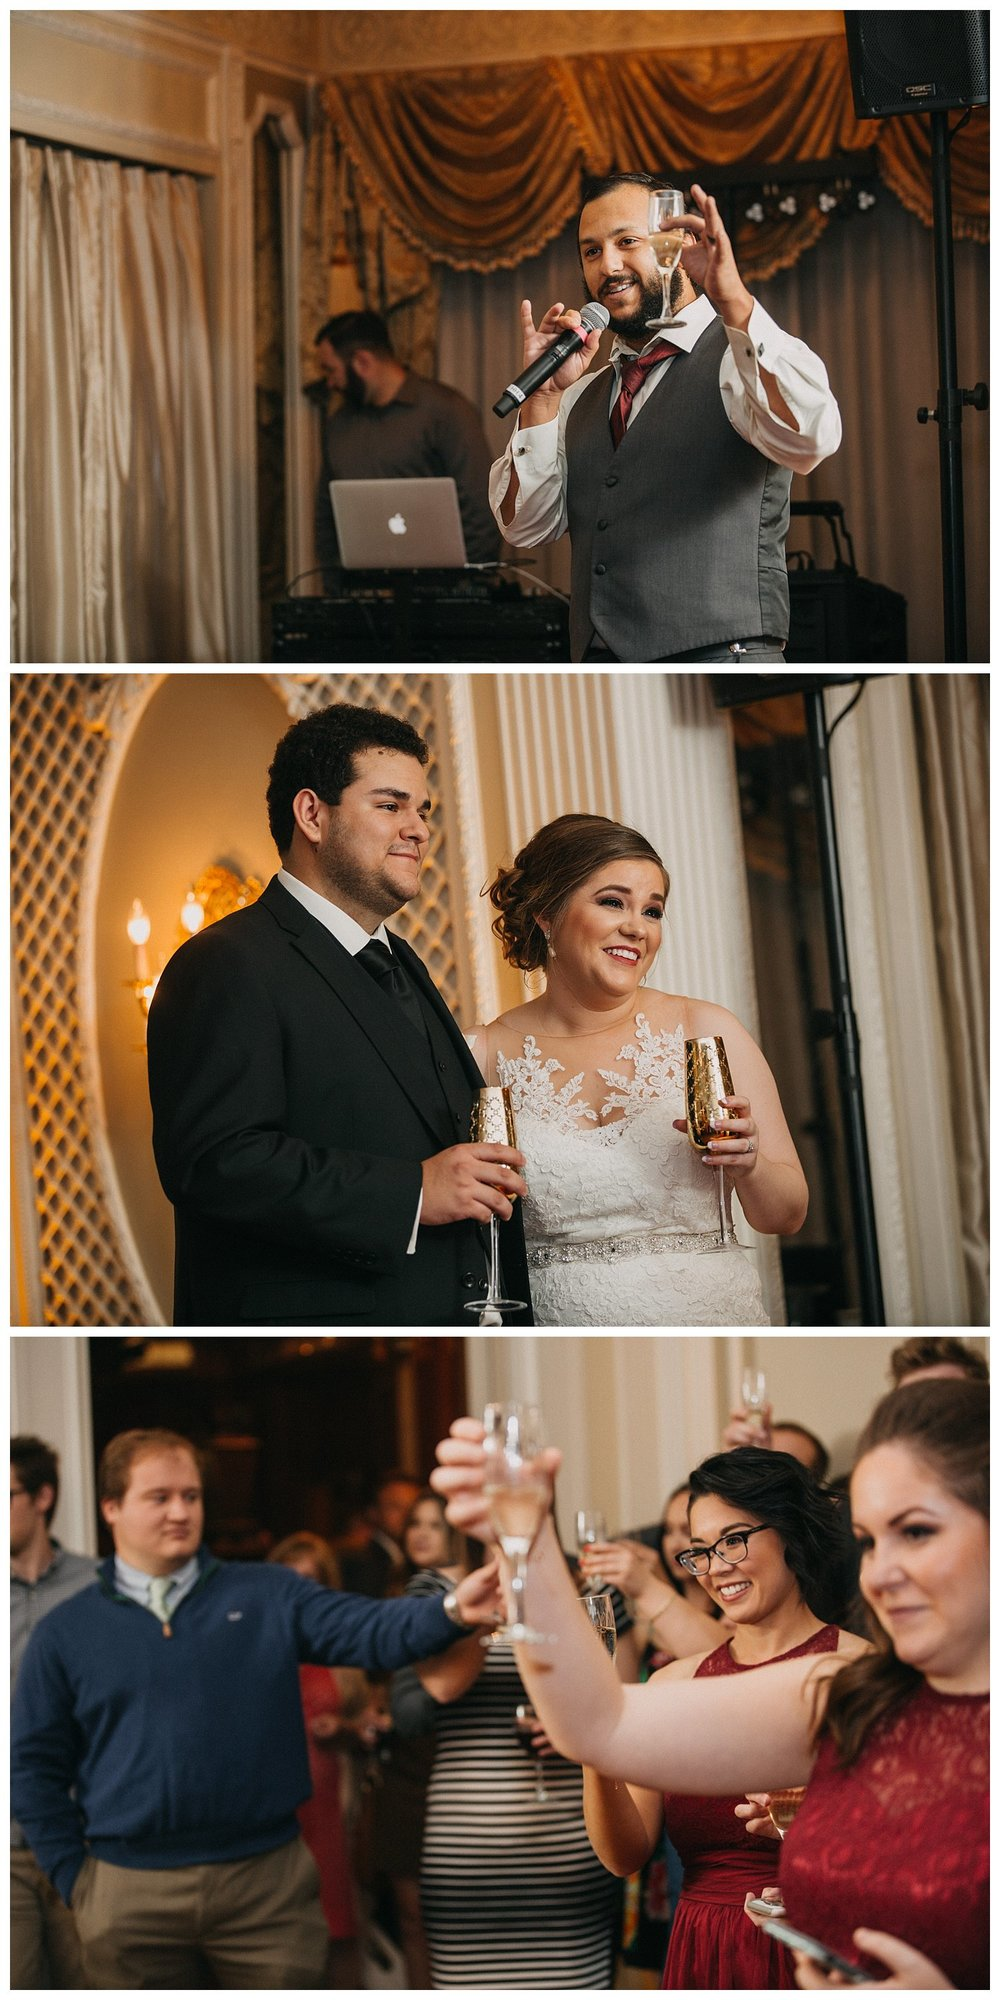 Kelsey_Diane_Photography_Loose_Mansion_Wedding_Photography_Kansas_City_Victor_Lyndsay_0163.jpg